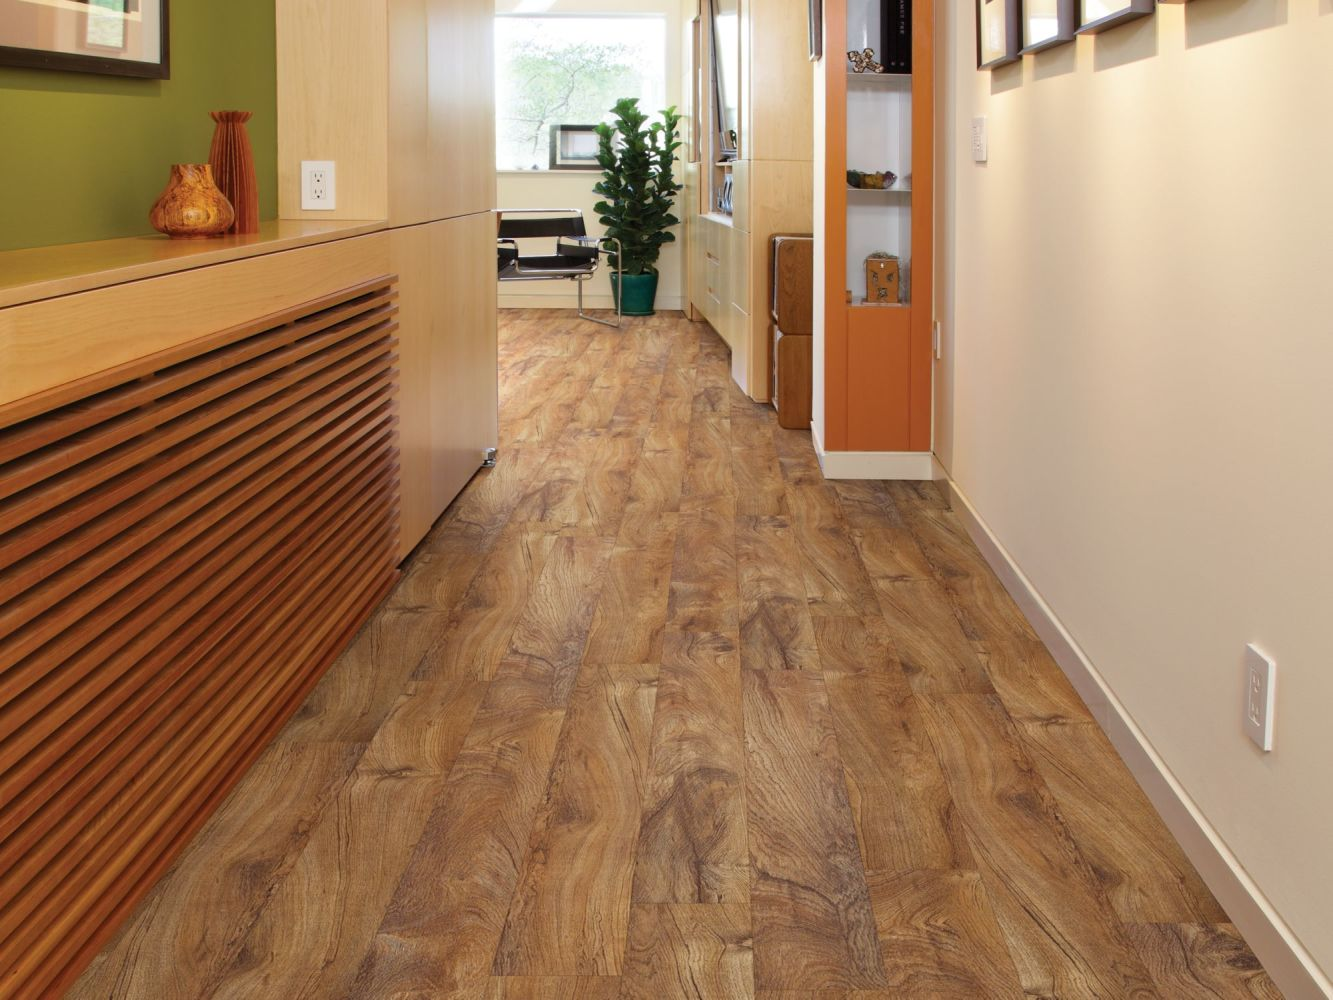 Shaw Floors Resilient Property Solutions Cameron Pl Click Tropic 00600_VE181